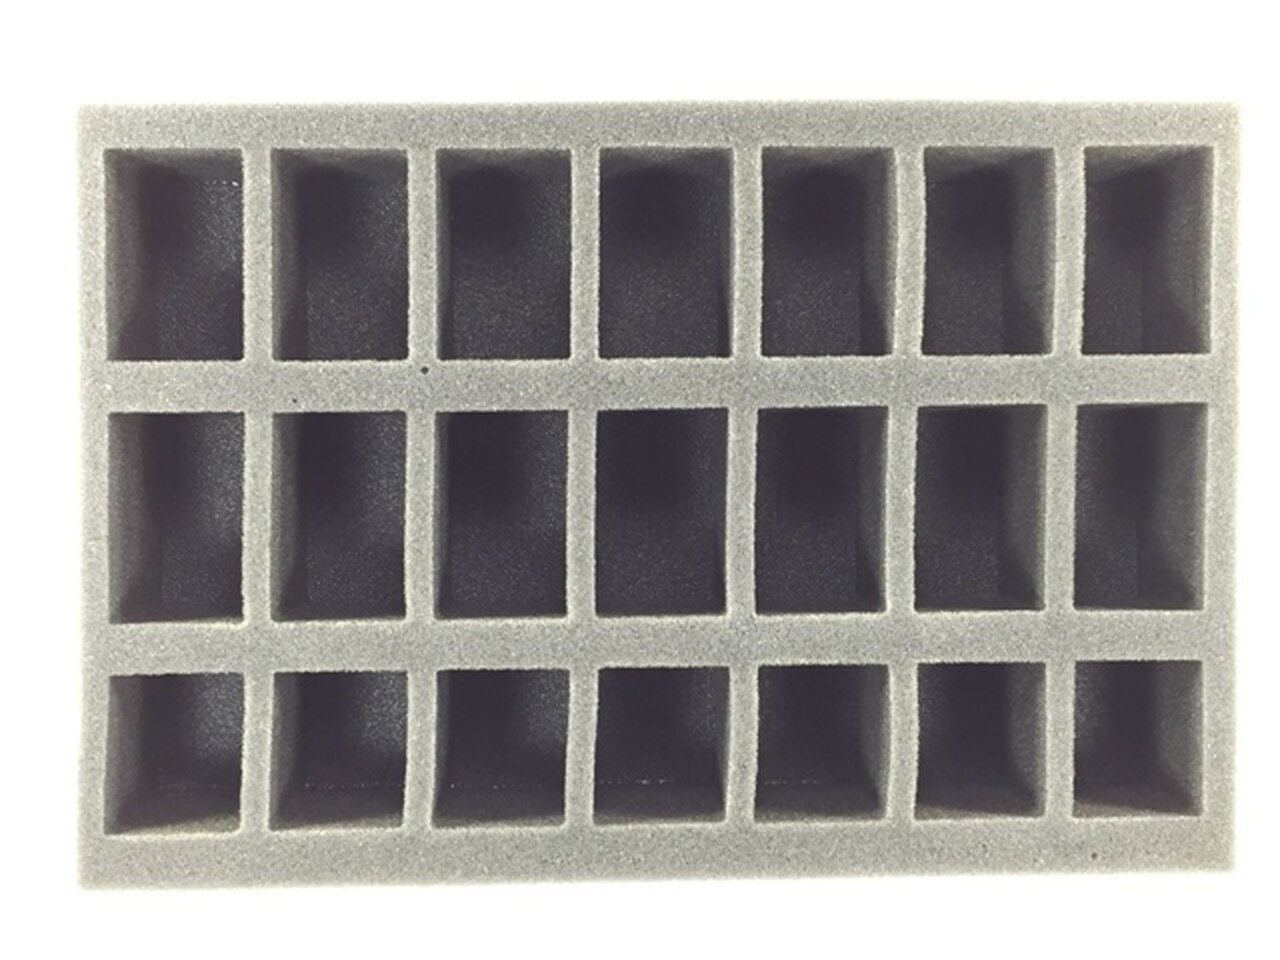 Battlefoam: 14 Large 7 Medium Troop Foam Tray (BFS-2)